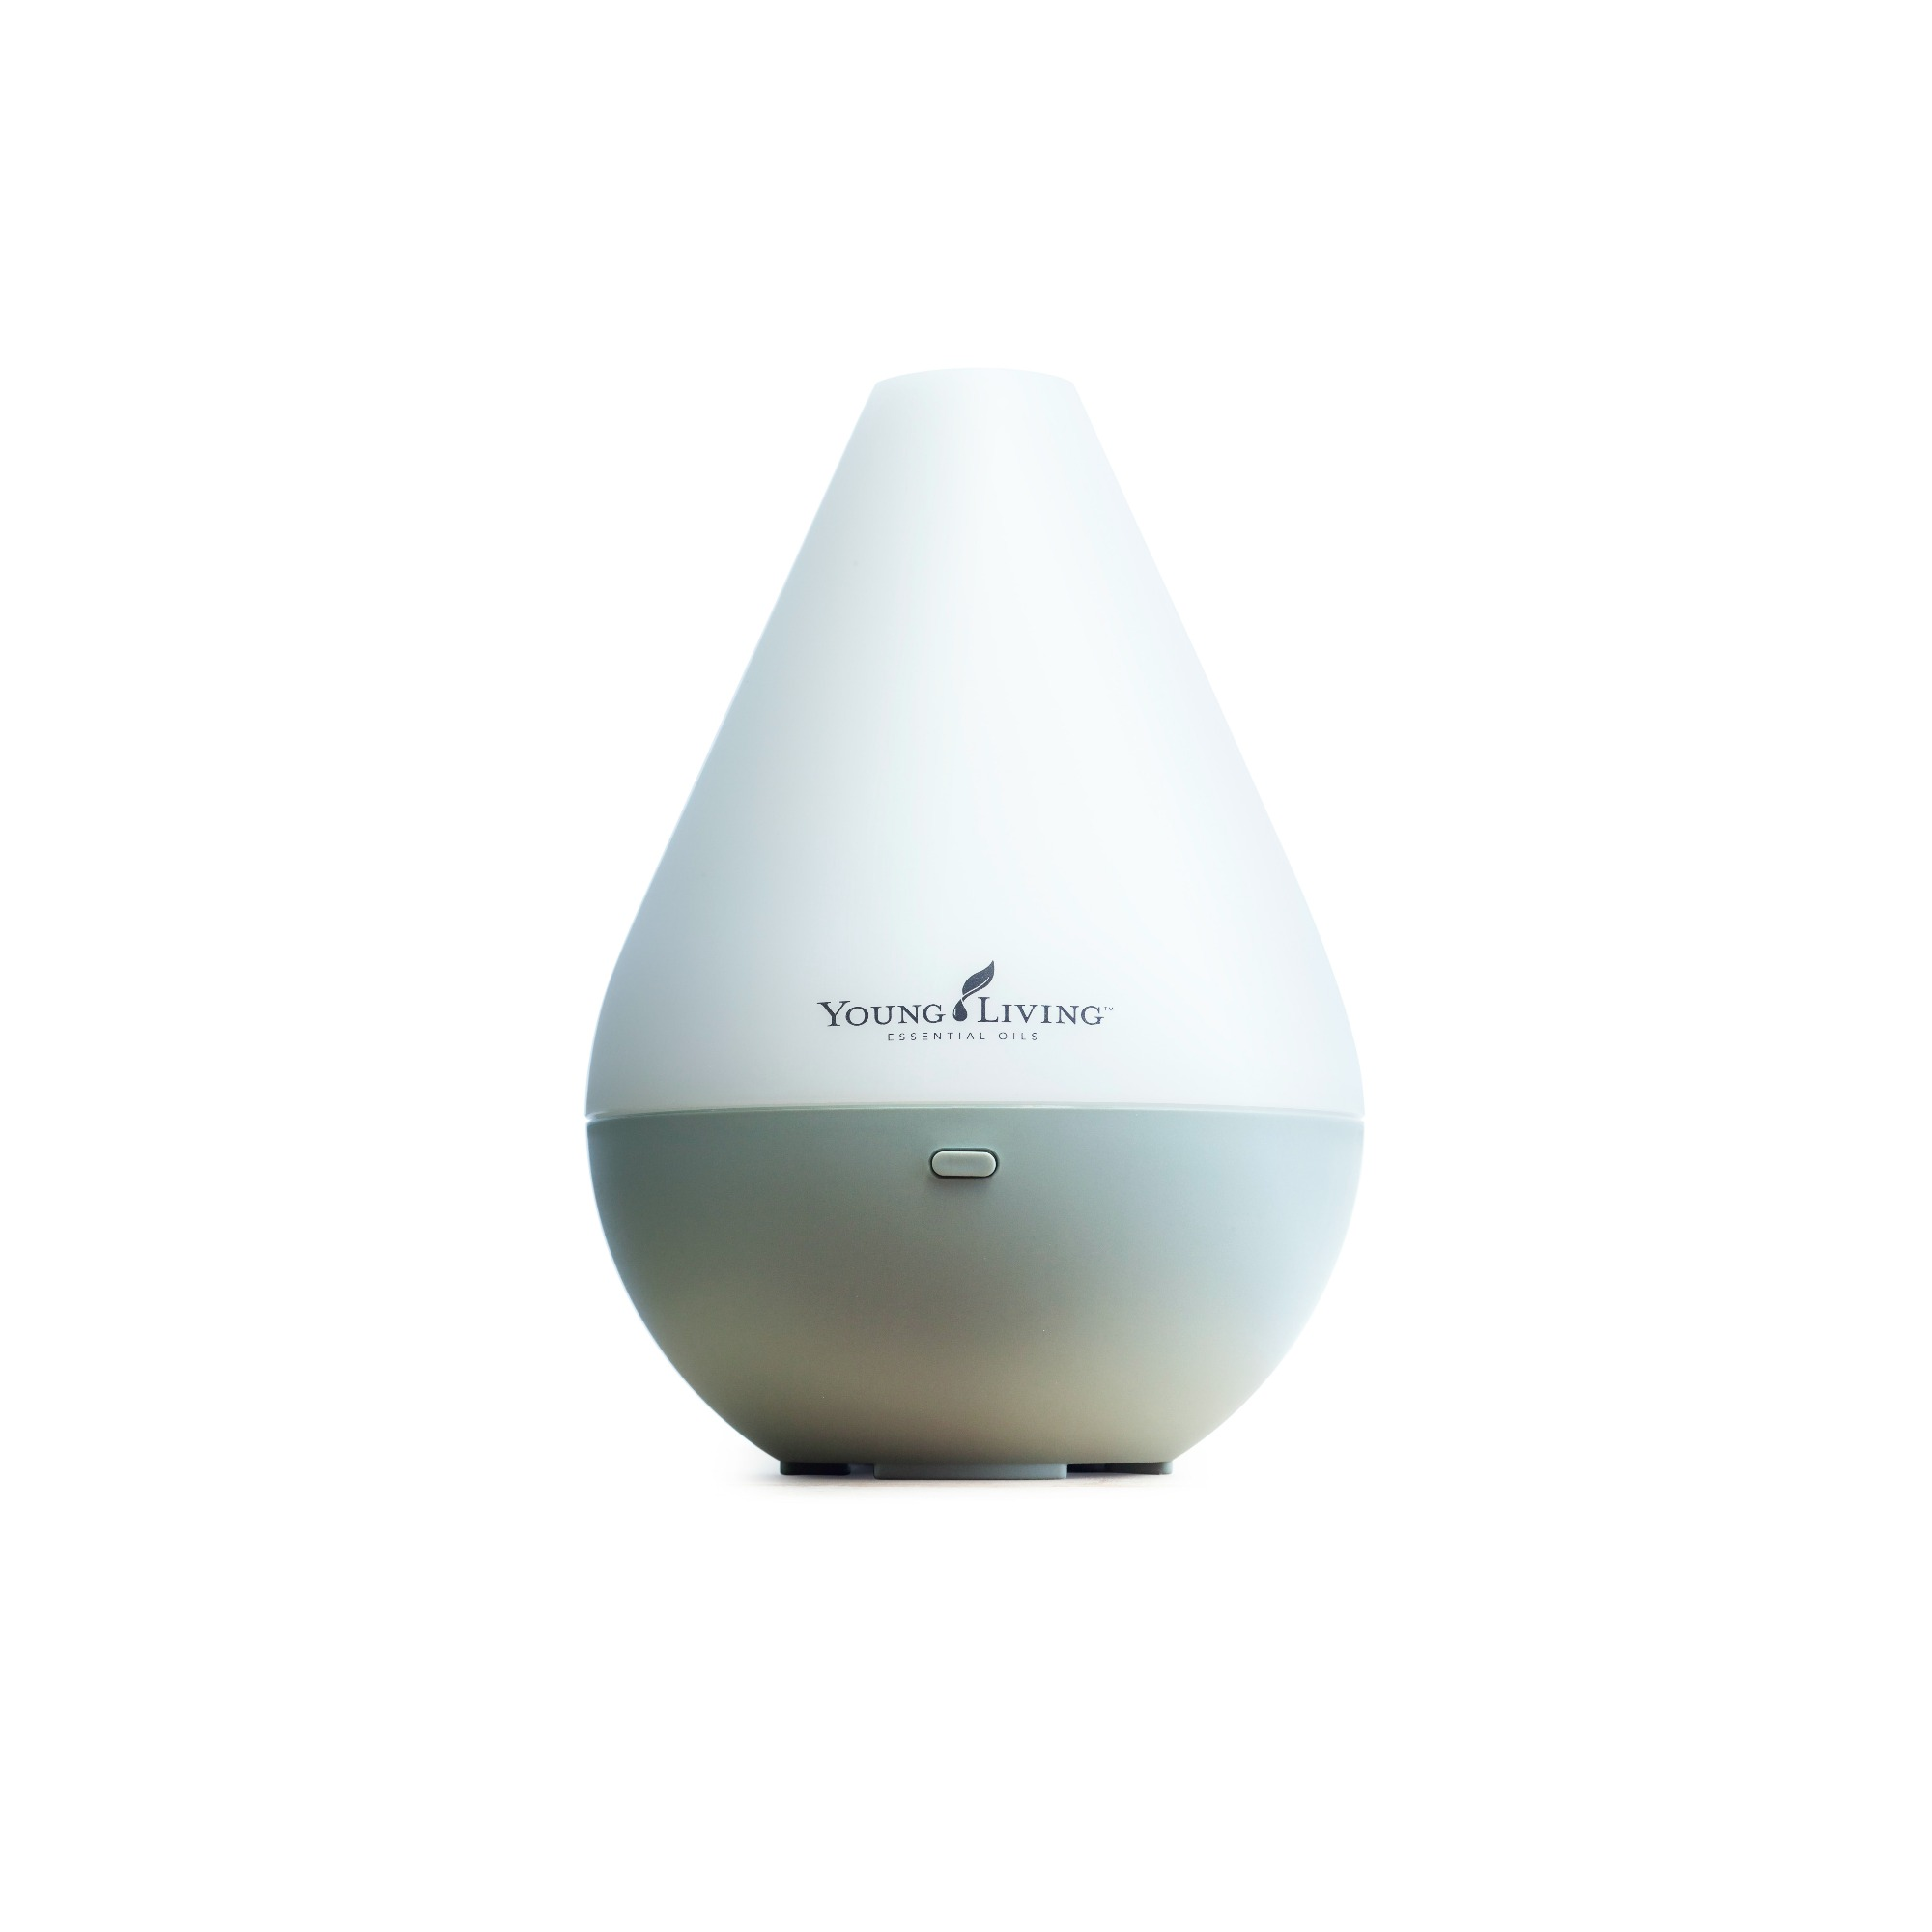 DEWDROP DIFFUSER    Inspired by the purity and elegance of a drop of morning dew, this diffuser functions as a humidifier, atomizer, and aroma diffuser. Custom designed with up to four hours of continuous-run diffusion, automatic shutoff, and ambient light control. Comes with a 5ml bottle of Tangerine and Peppermint essential oils.   Click here   to learn more about this product.